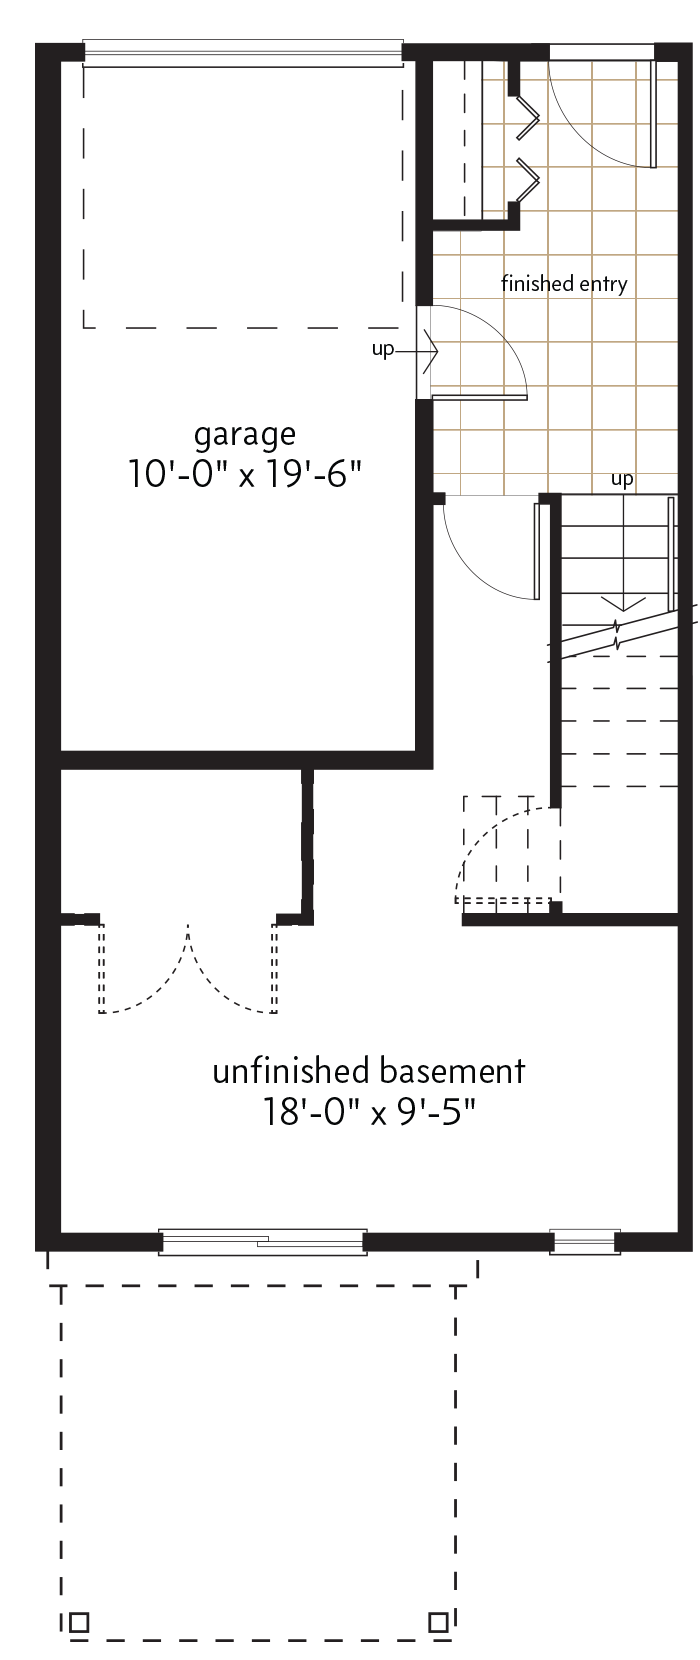 BASEMENT LEVEL  |  96 SQ. FT.